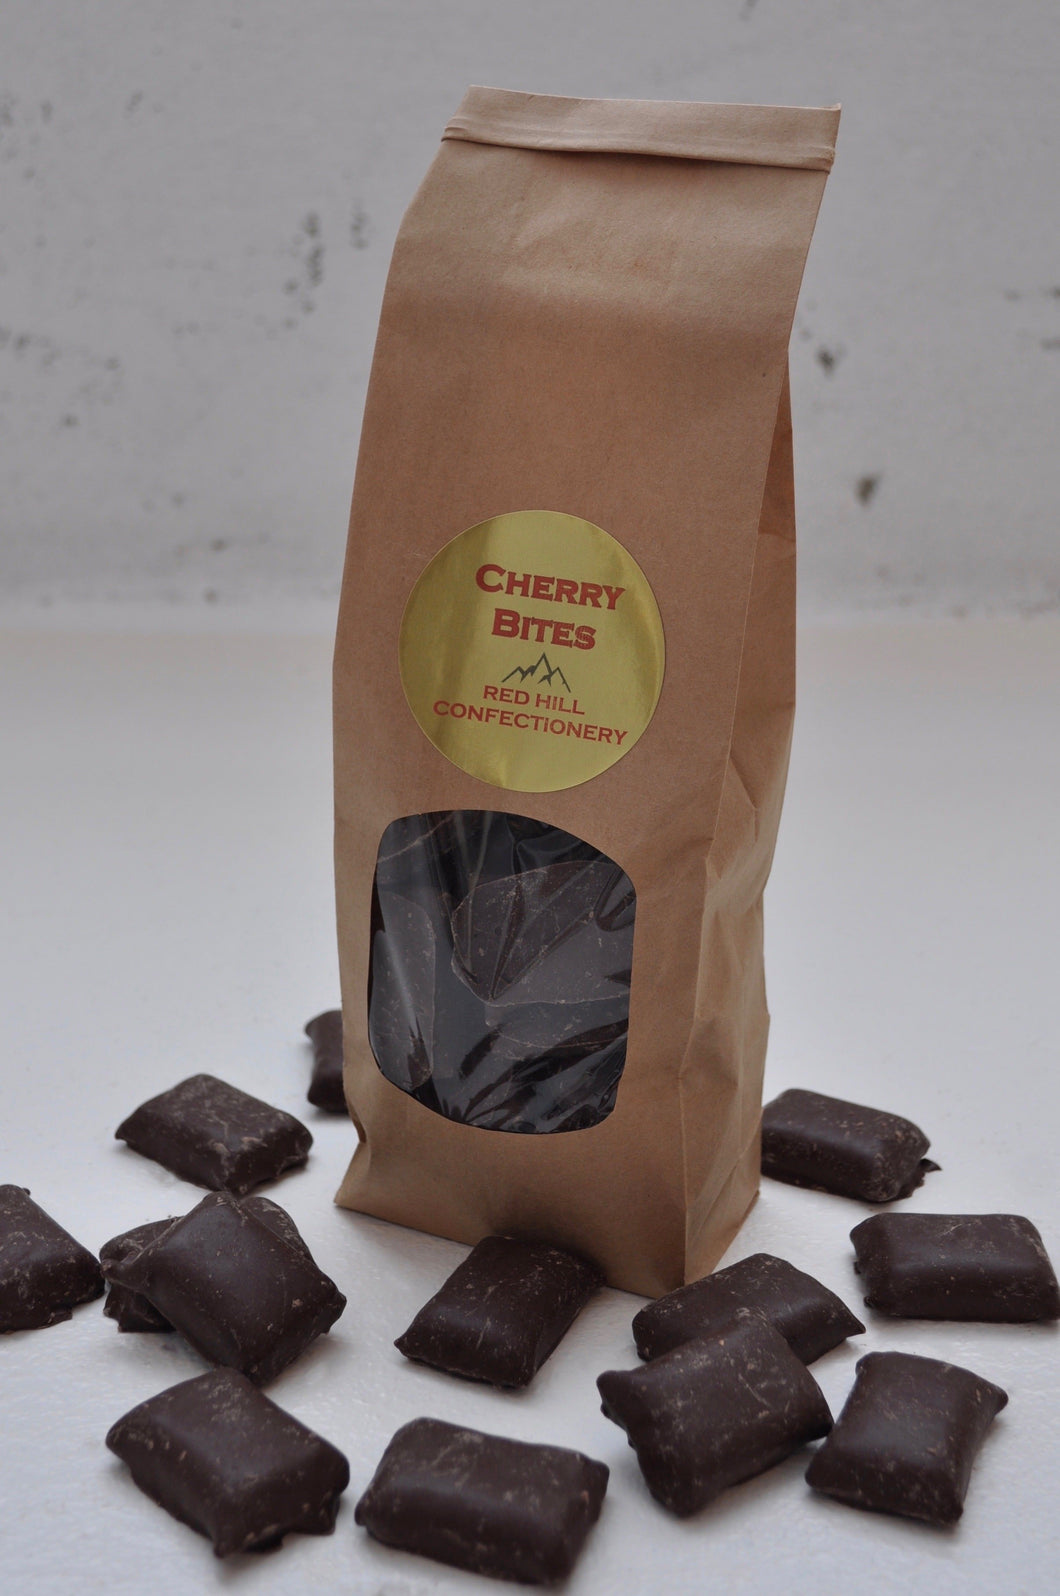 Red Hill Confectionery - Chocolate Cherry Bites 300g Bag